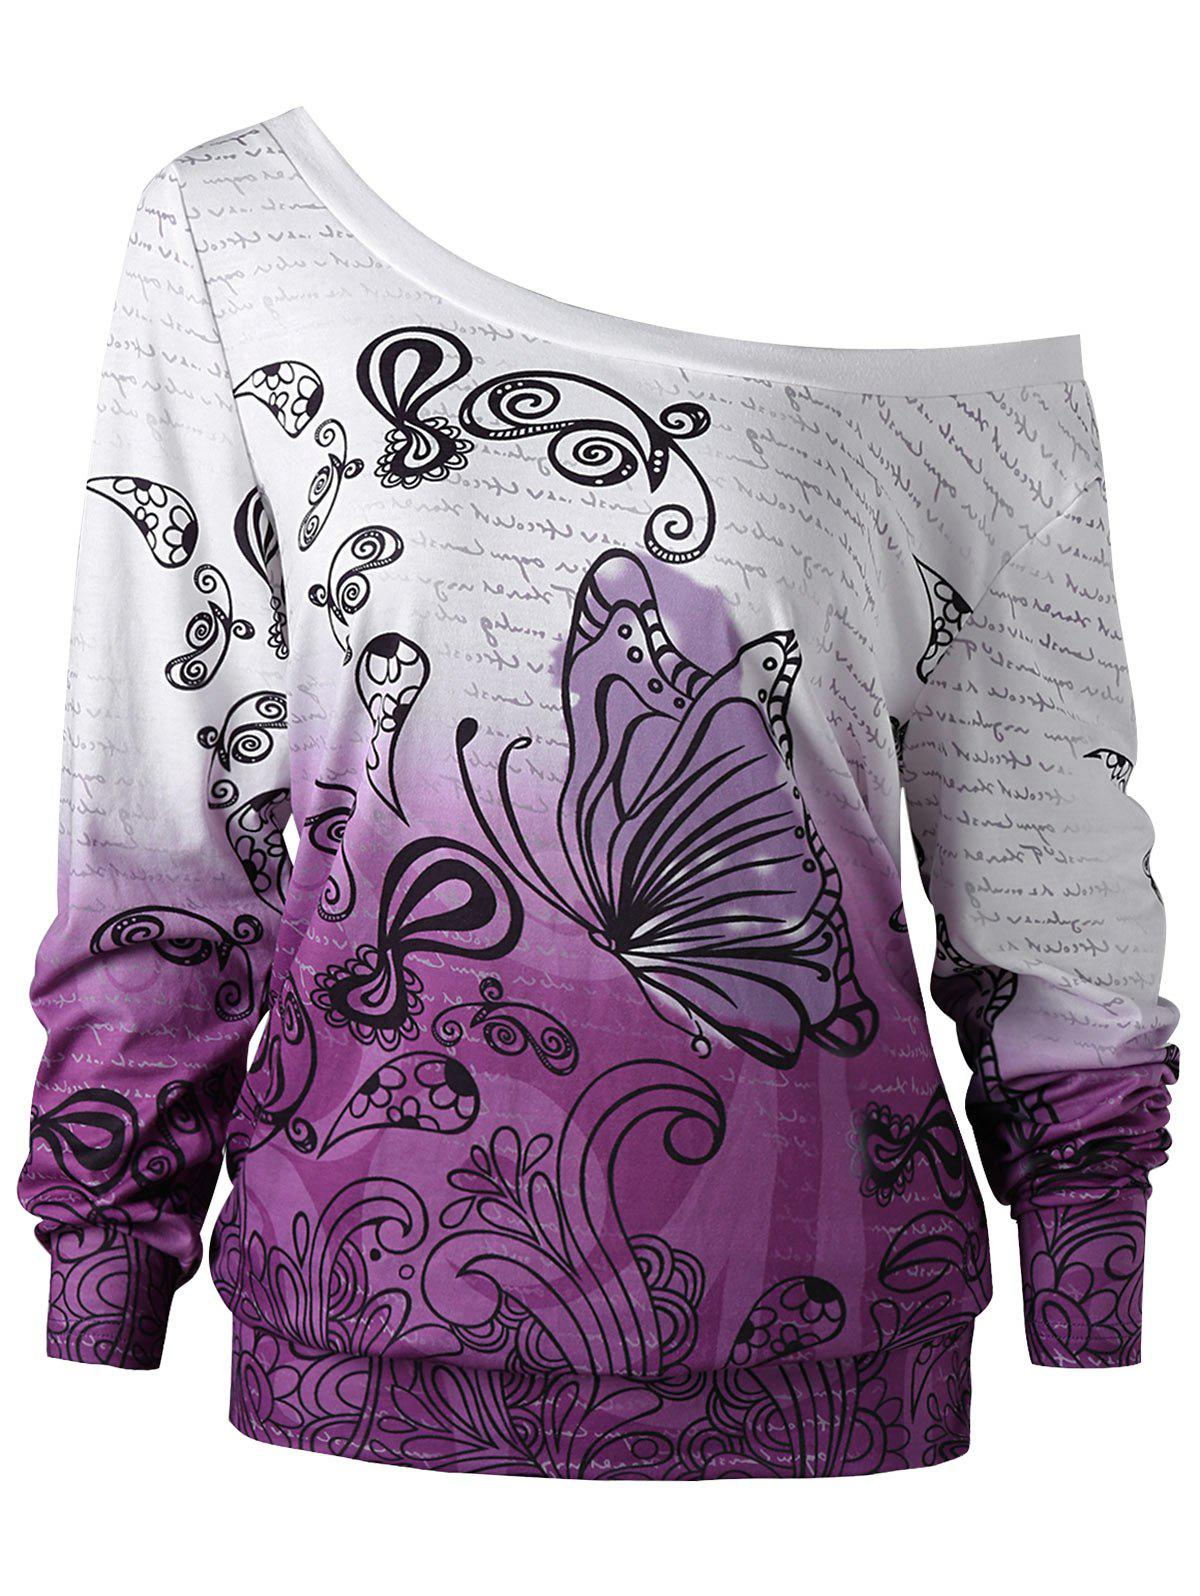 Plus Size Ombre Butterfly Print SweatshirtWOMEN<br><br>Size: 3XL; Color: WHITE + PURPLE; Material: Polyester,Spandex; Shirt Length: Regular; Sleeve Length: Full; Style: Casual; Pattern Style: Insect; Season: Fall,Spring; Weight: 0.3100kg; Package Contents: 1 x Sweatshirt;